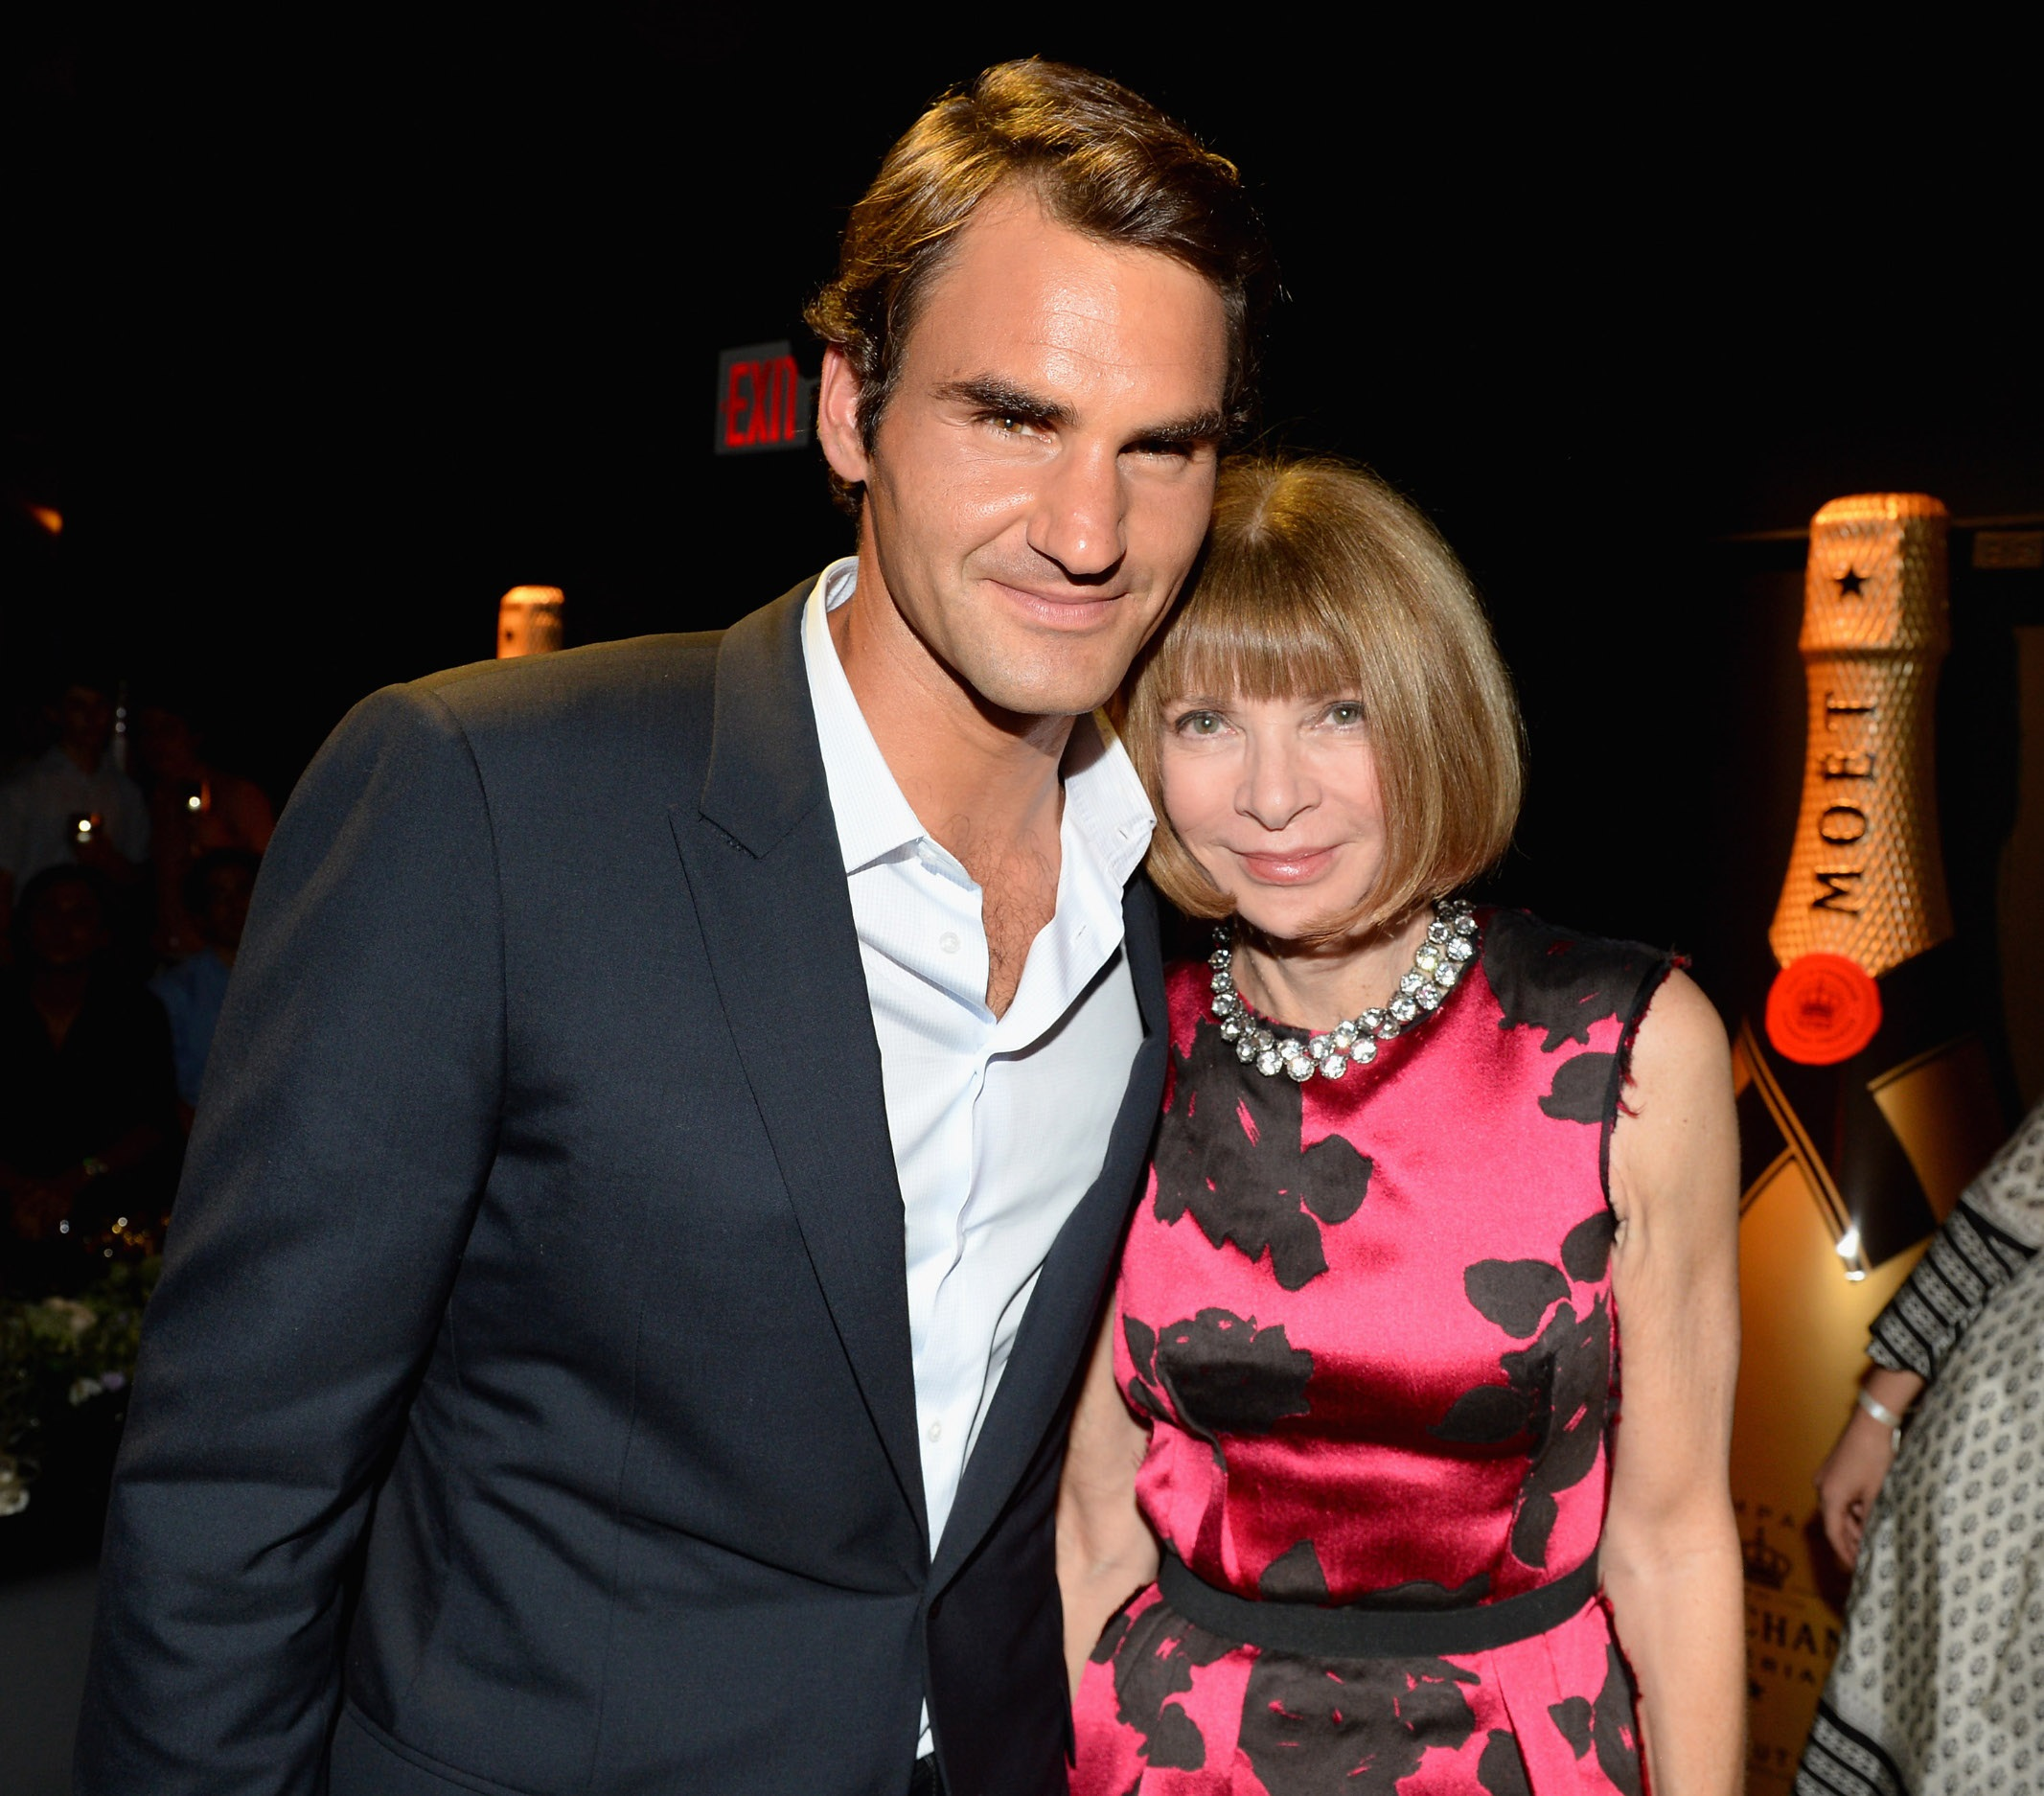 NEW YORK, NY - AUGUST 20:  Professional Tennis Player Roger Federer (L) and Vogue Editor-in-Chief Anna Wintour attend Moet & Chandon Celebrates Its 270th Anniversary With New Global Brand Ambassador, International Tennis Champion, Roger Federer at Chelsea Piers Sports Center on August 20, 2013 in New York City.  (Photo by Andrew H. Walker/Getty Images for Moet & Chandon)